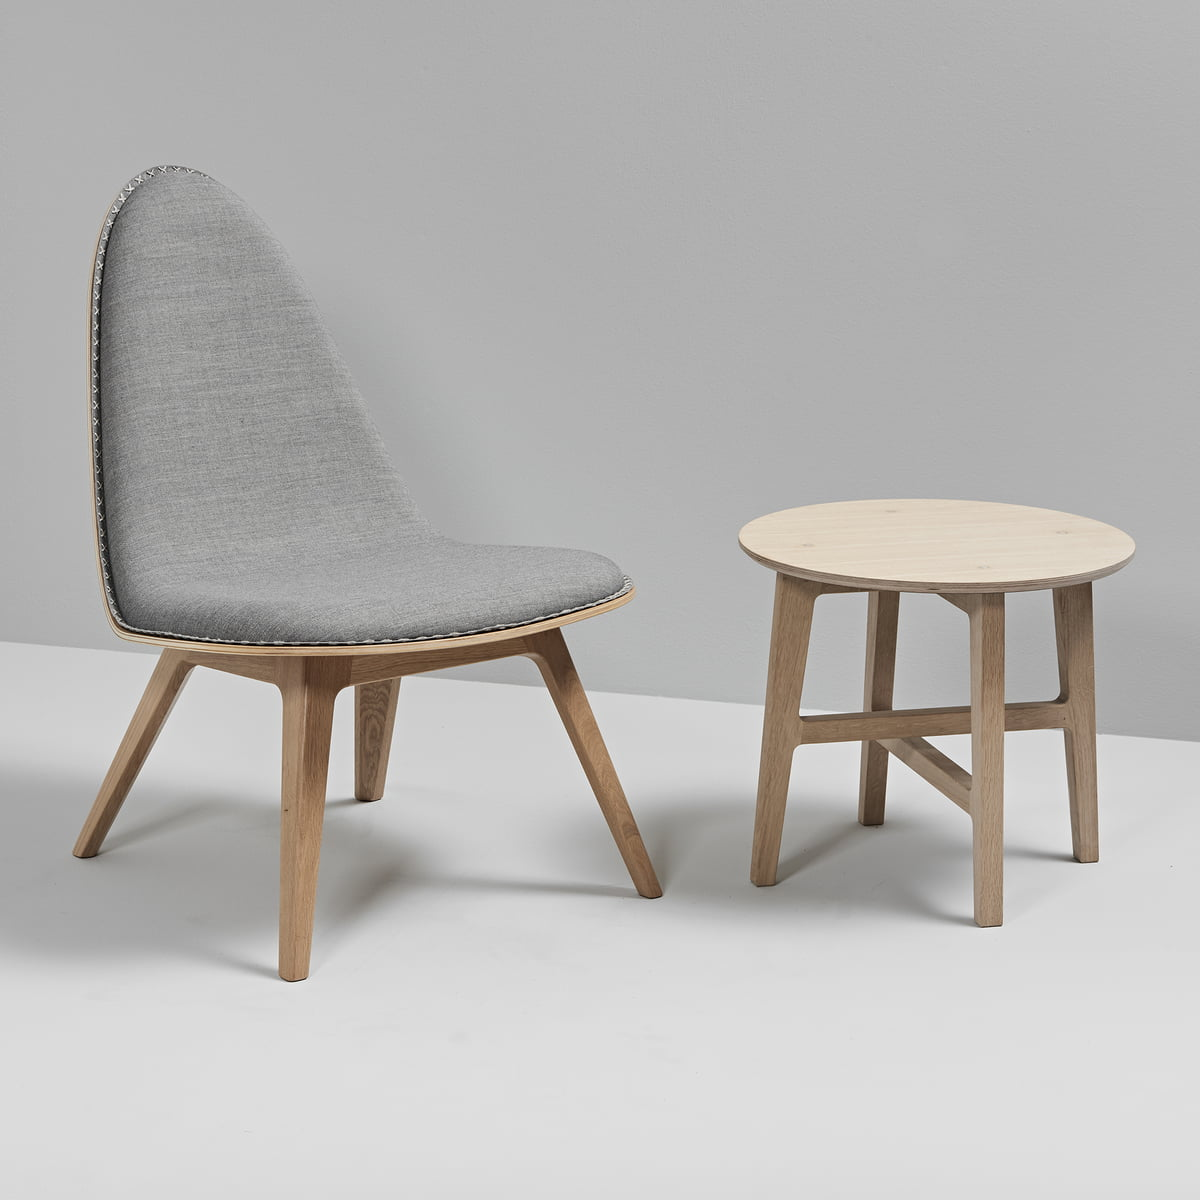 Merveilleux Nordic Side Table And Nordic Lounge Chair